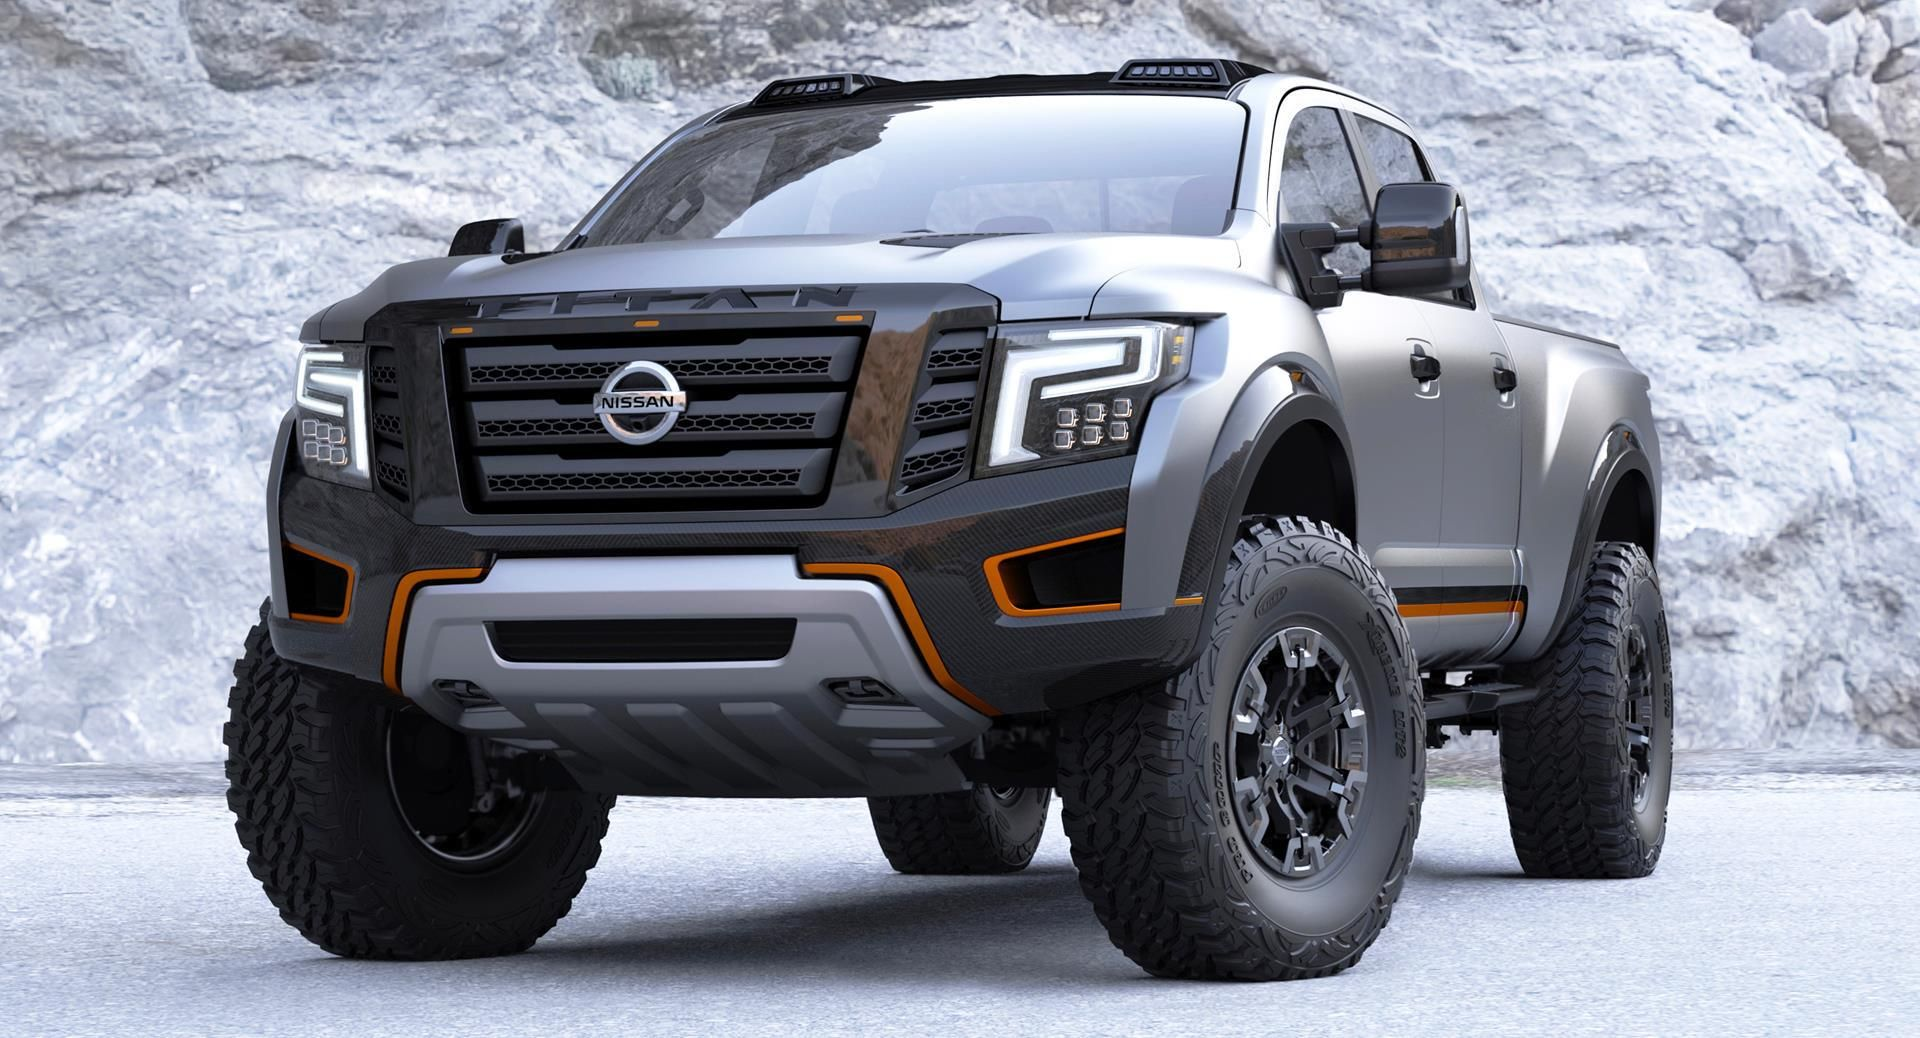 77 All New 2020 Nissan Titan Xd Concept and Review